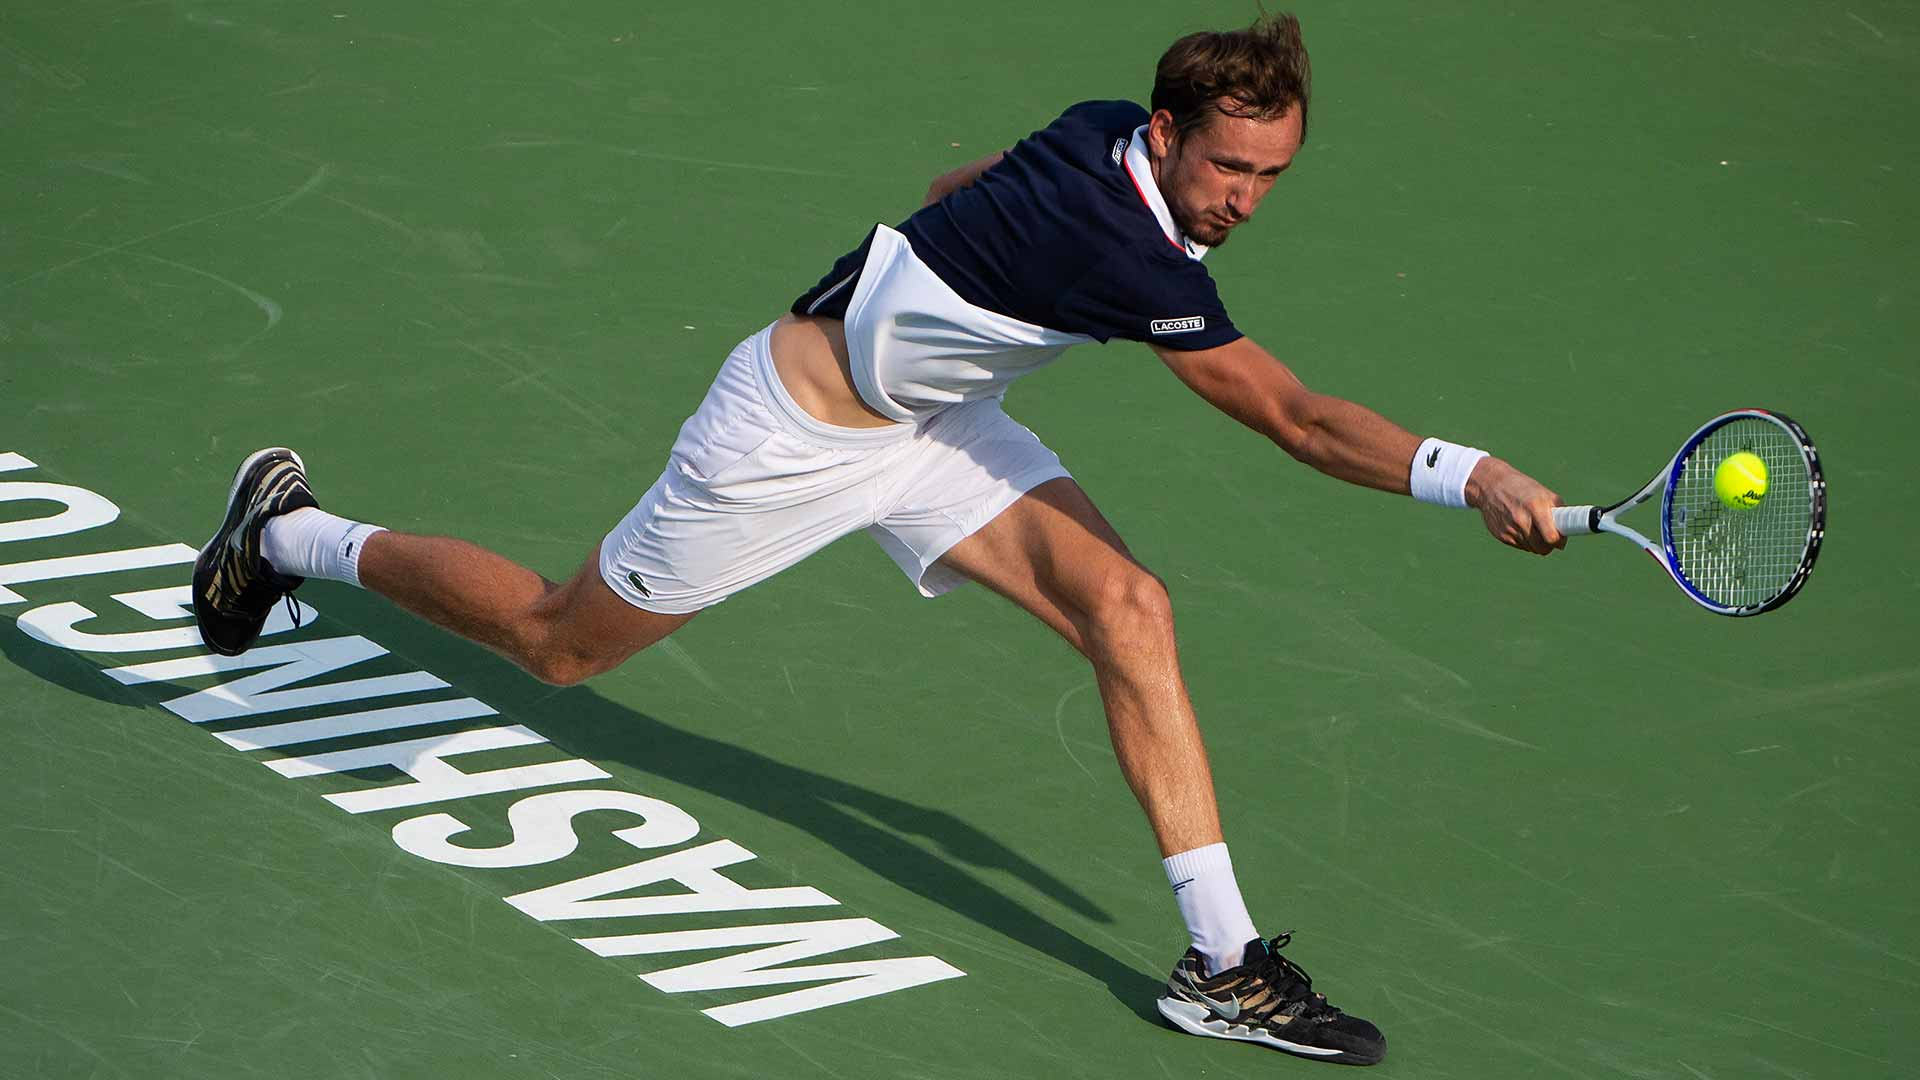 <a href='https://www.atptour.com/en/players/daniil-medvedev/mm58/overview'>Daniil Medvedev</a> is going for his second ATP 500 title in Washington, D.C.